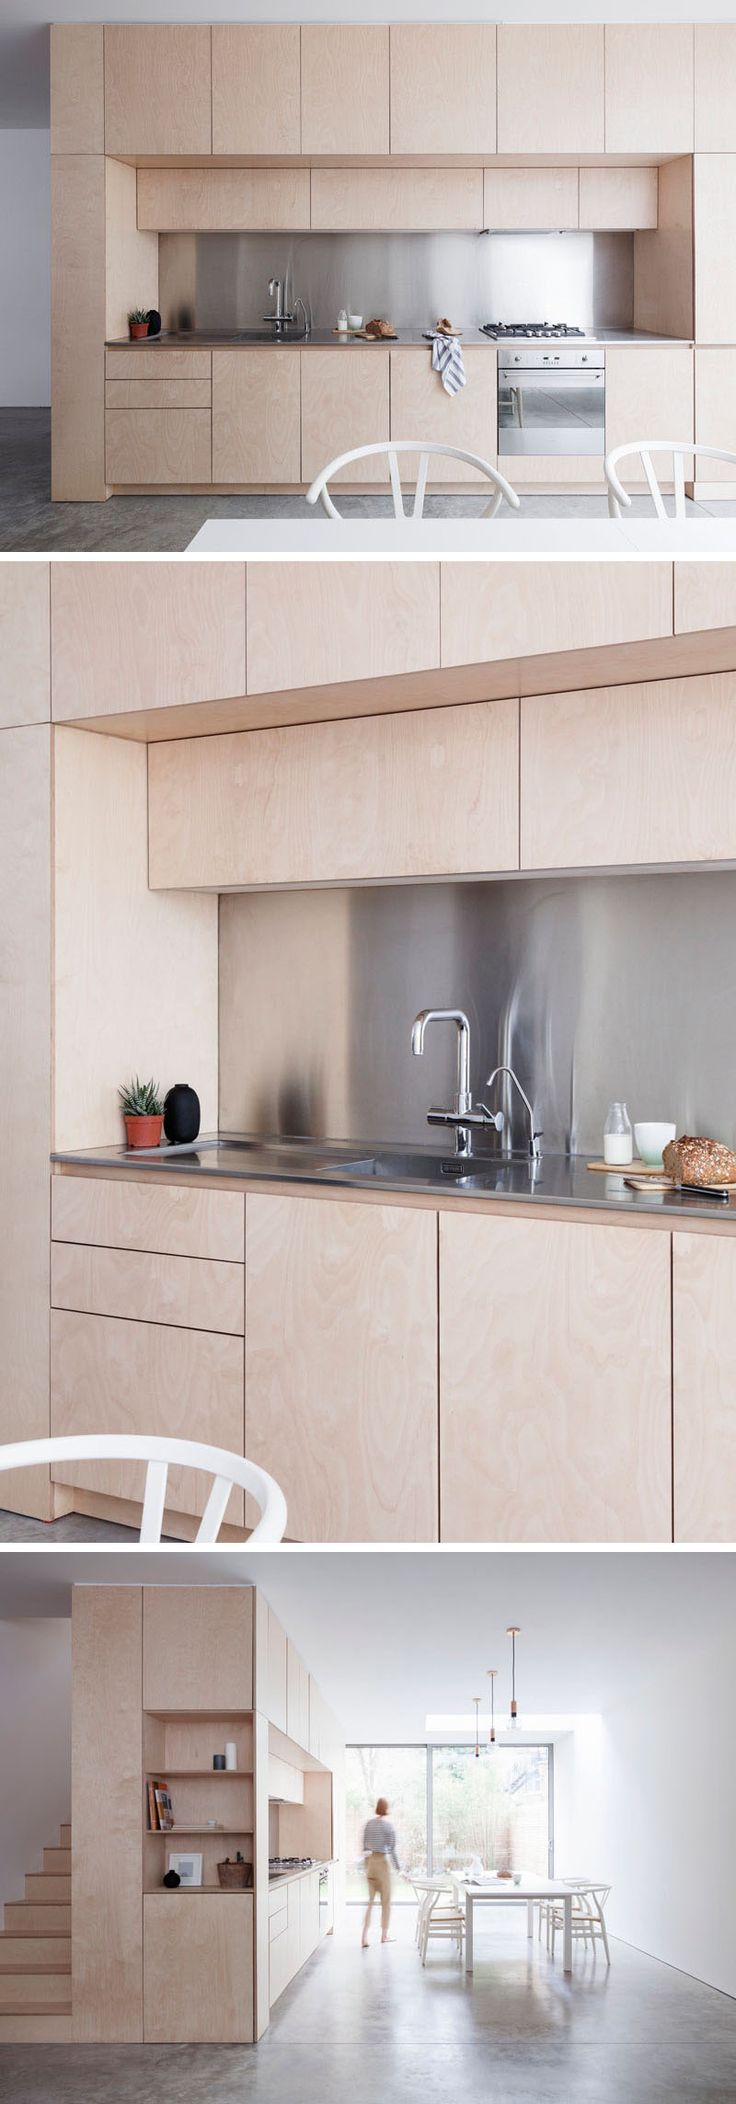 Light wood cabinets with stainless steel countertops and backsplash give this kitchen a contemporary design